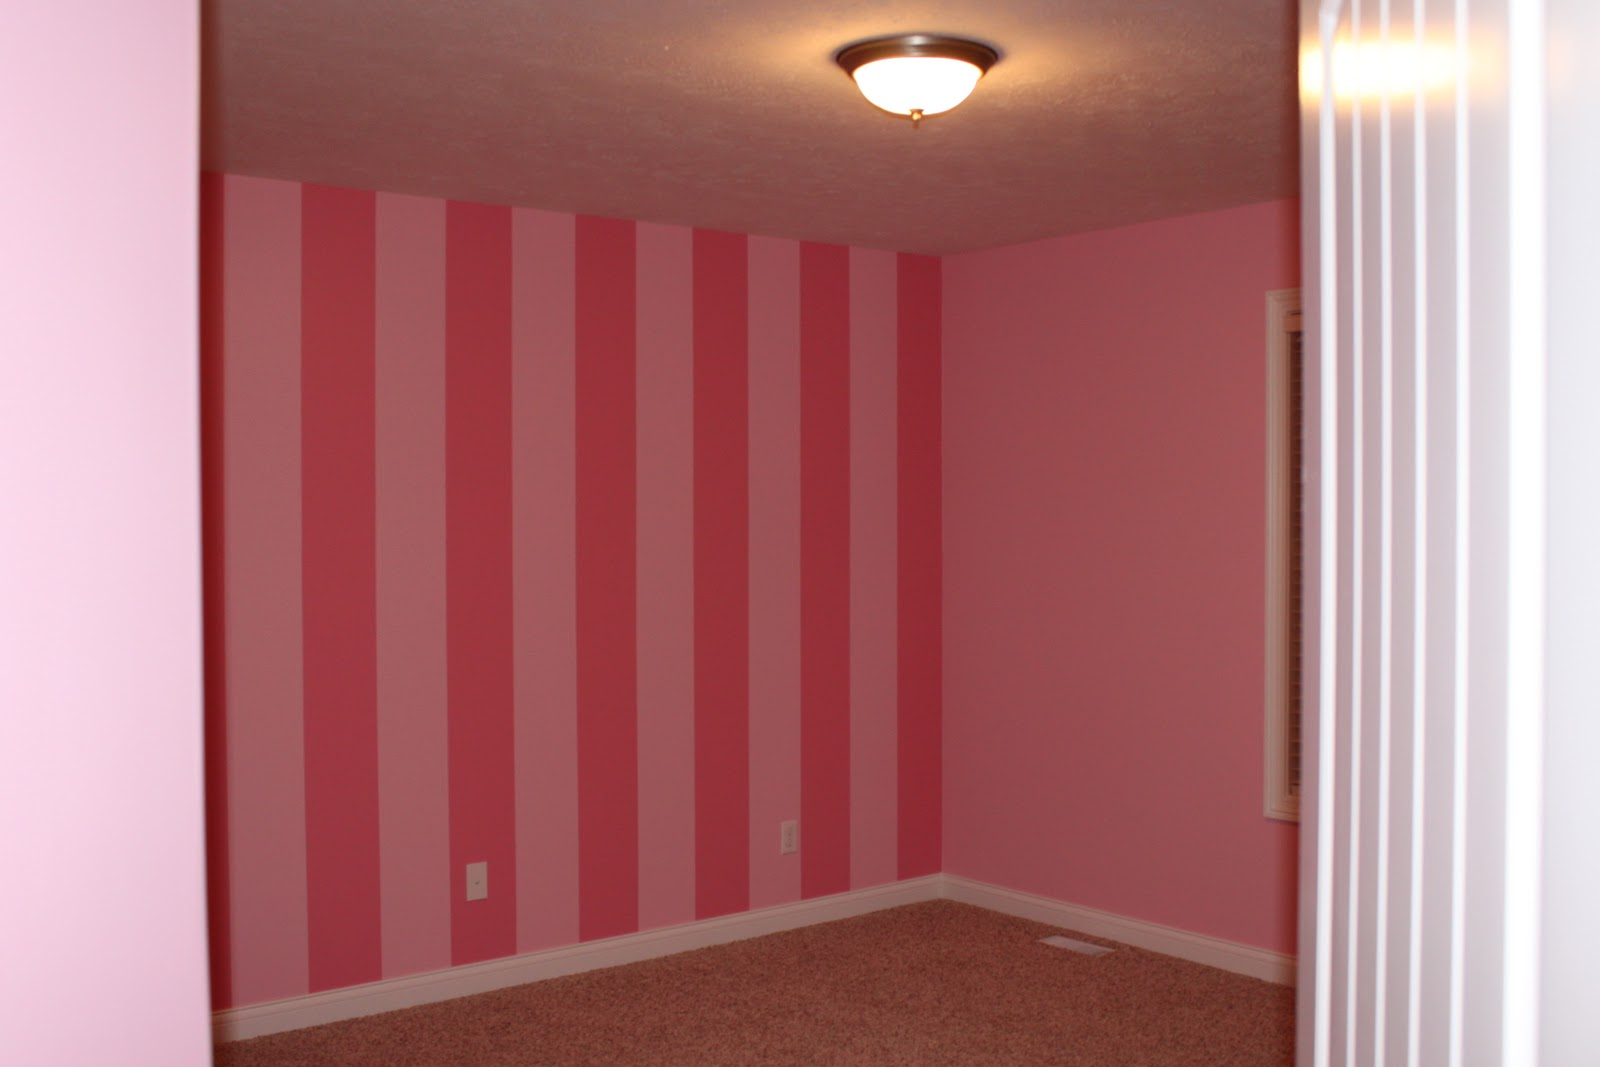 victoria secret bedroom. Lexiu0027s Room Is Painted  Victoria Secret Bedroom Wallpaper Home Design Ideas and Pictures